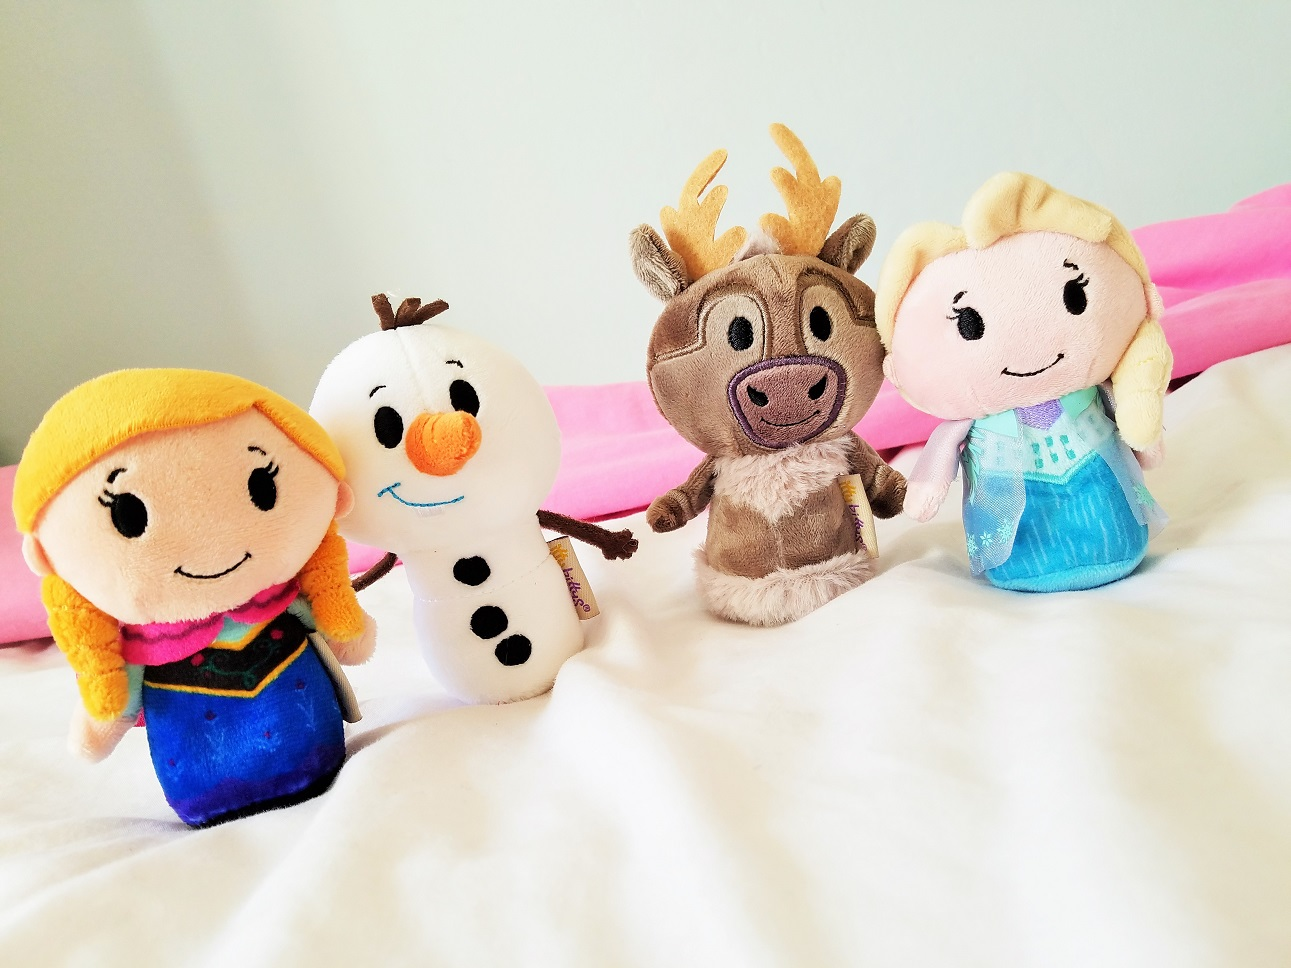 Stuffed Toys Frozen Itty bitty